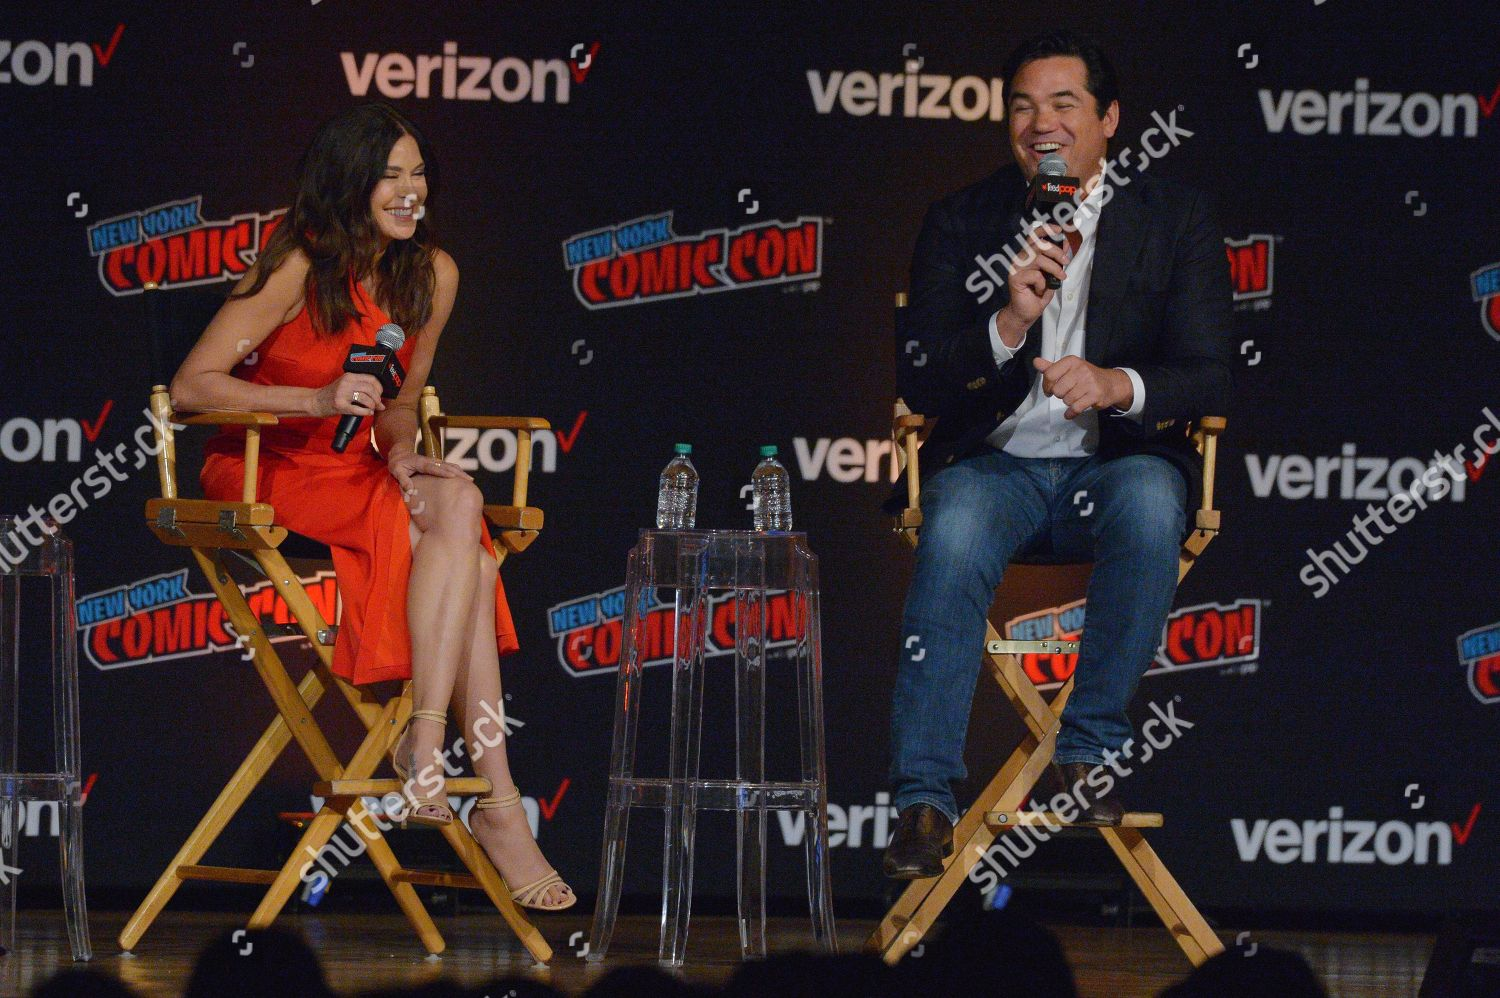 Teri Hatcher Dean Cain Editorial Stock Photo - Stock Image